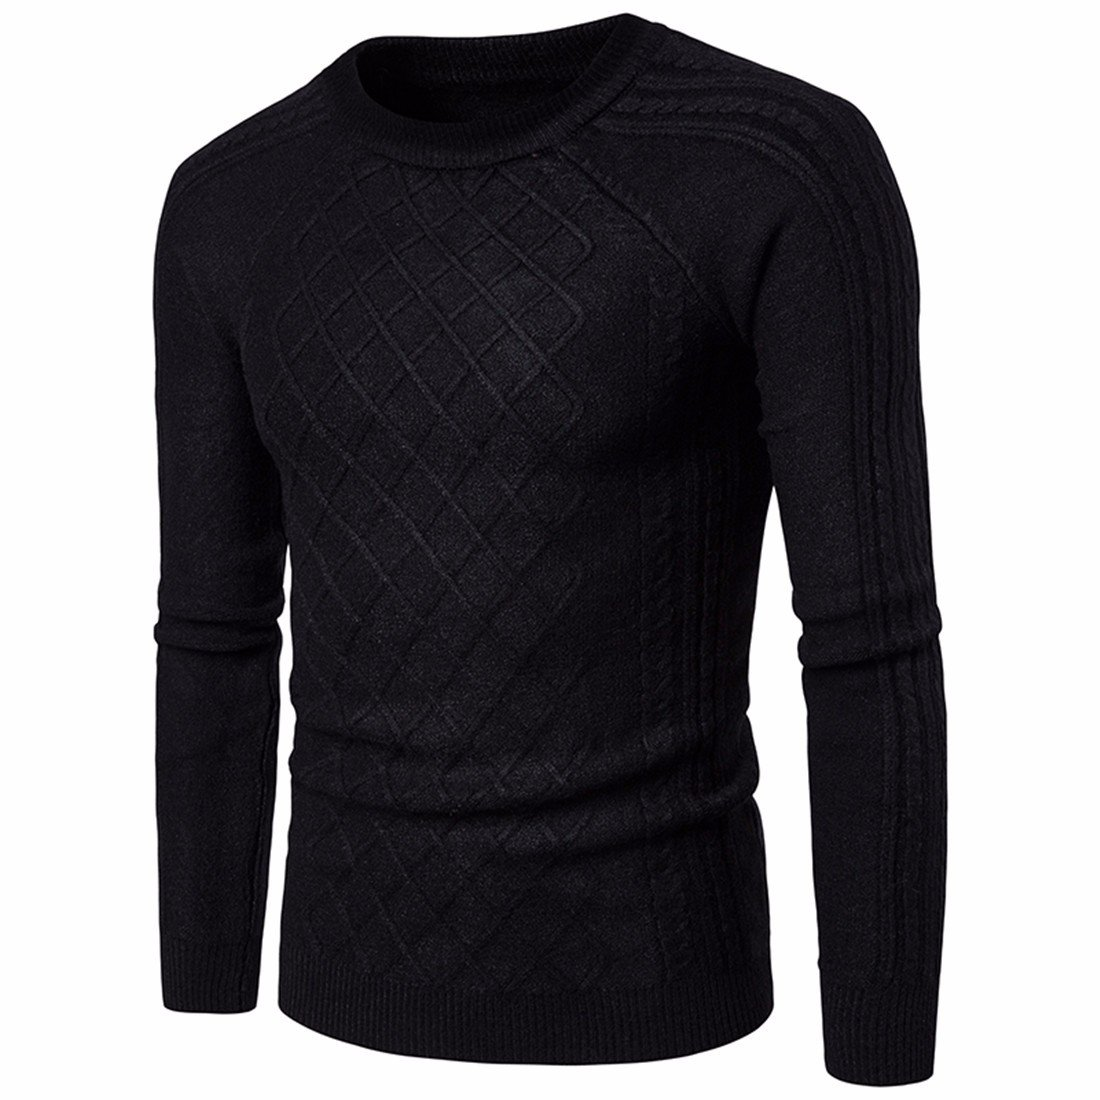 Autumn and winter are vertical stripes diamond pattern Mens Cotton Crewneck sweater sweater-YU/&XIN